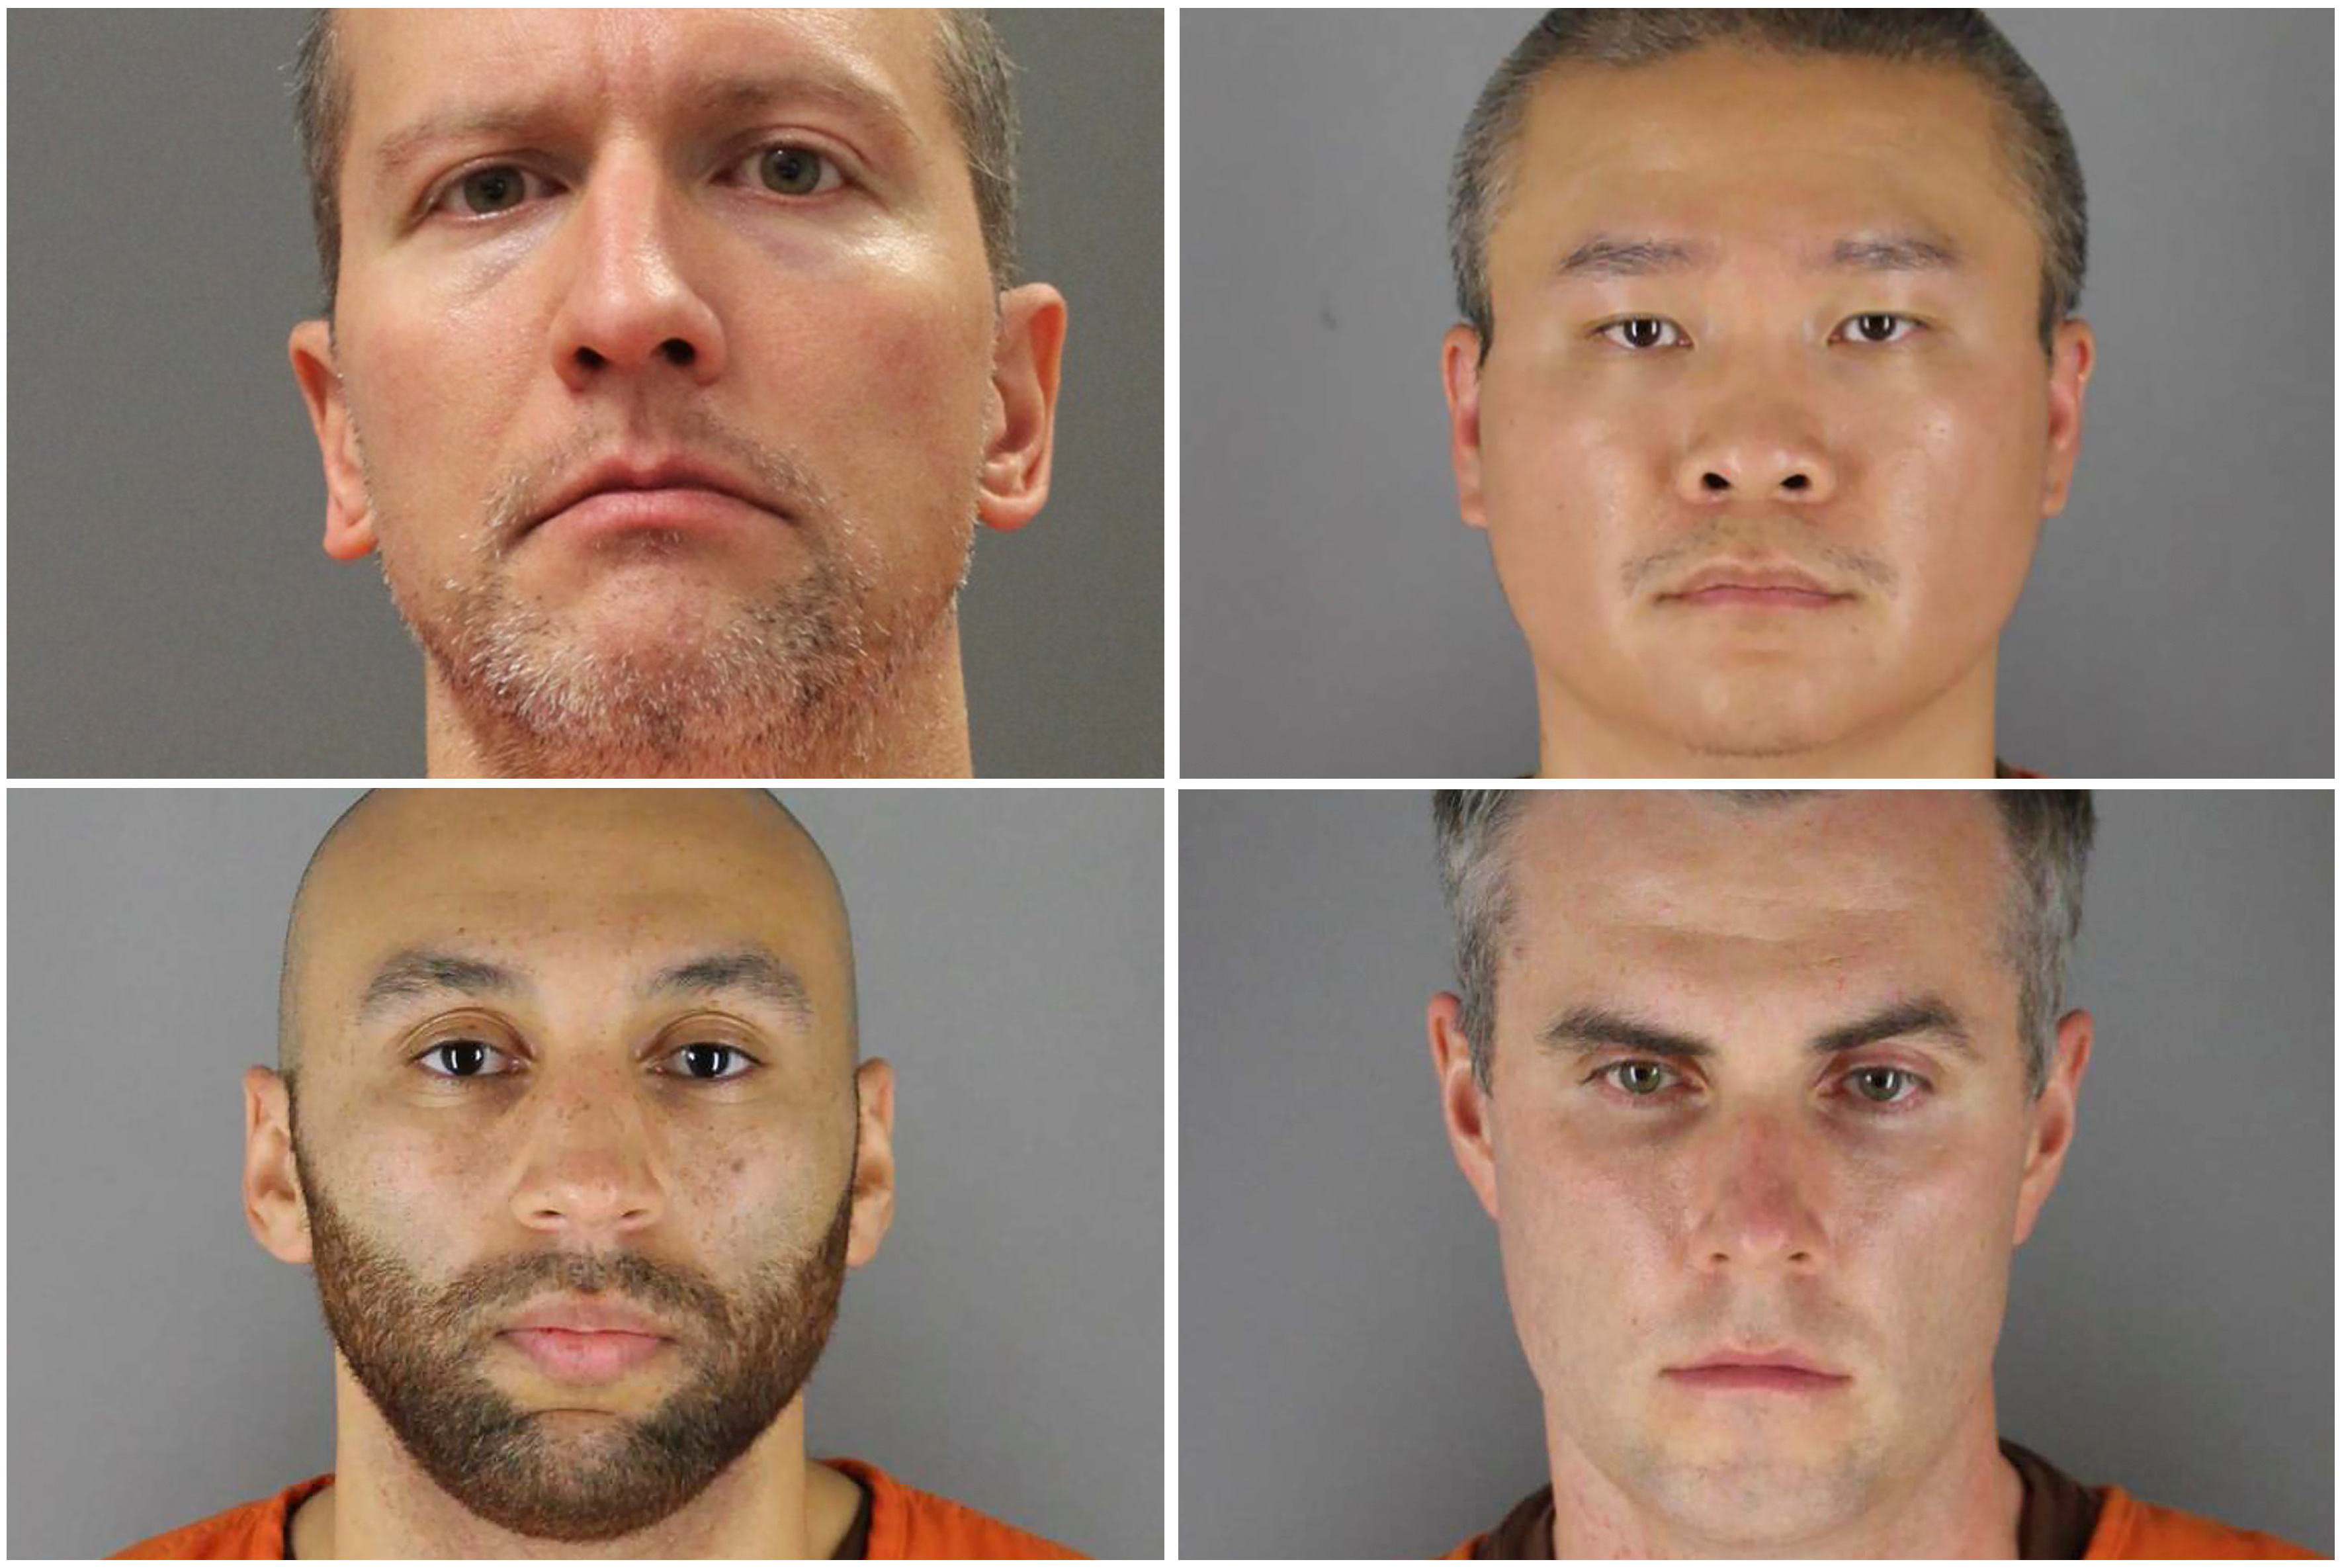 Former Minneapolis police officers (clockwise from top left) Derek Chauvin, Tou Thao, Thomas Lane and J. Alexander Kueng poses in a combination of booking photographs from the Minnesota Department of Corrections and Hennepin County Jail in Minneapolis, Minnesota, U.S. [Minnesota Department of Corrections and Hennepin County Sheriff's Office/Handout via REUTERS]